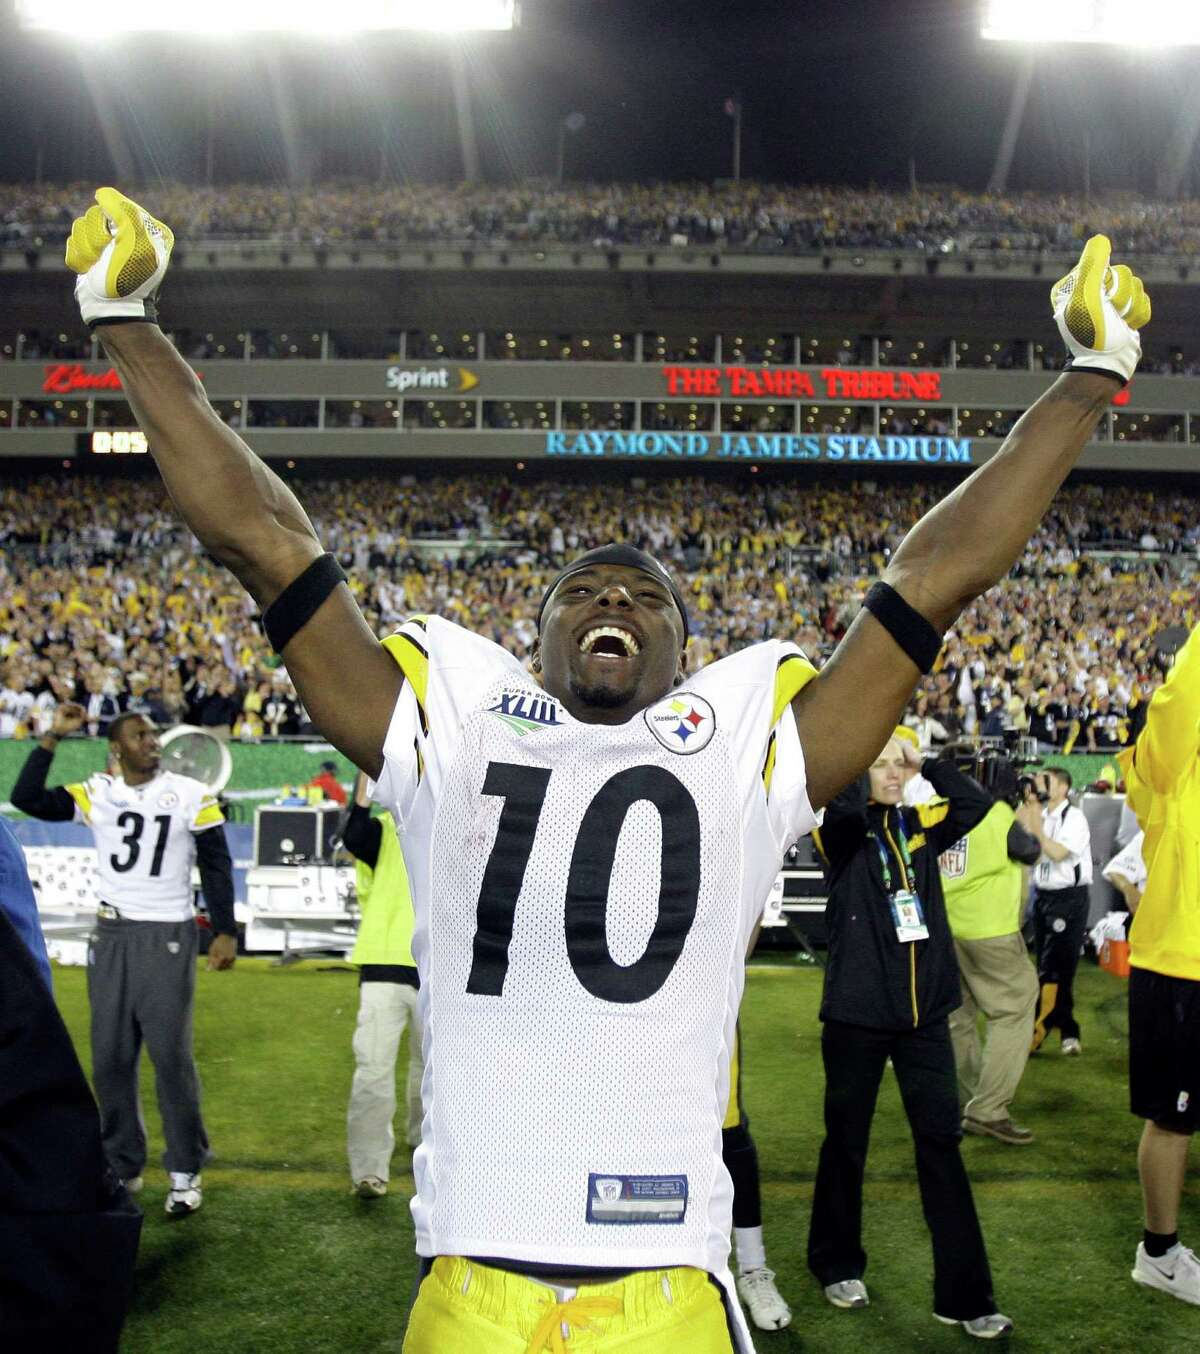 The Steelers and Santonio Holmes had their own catch to celebrate.